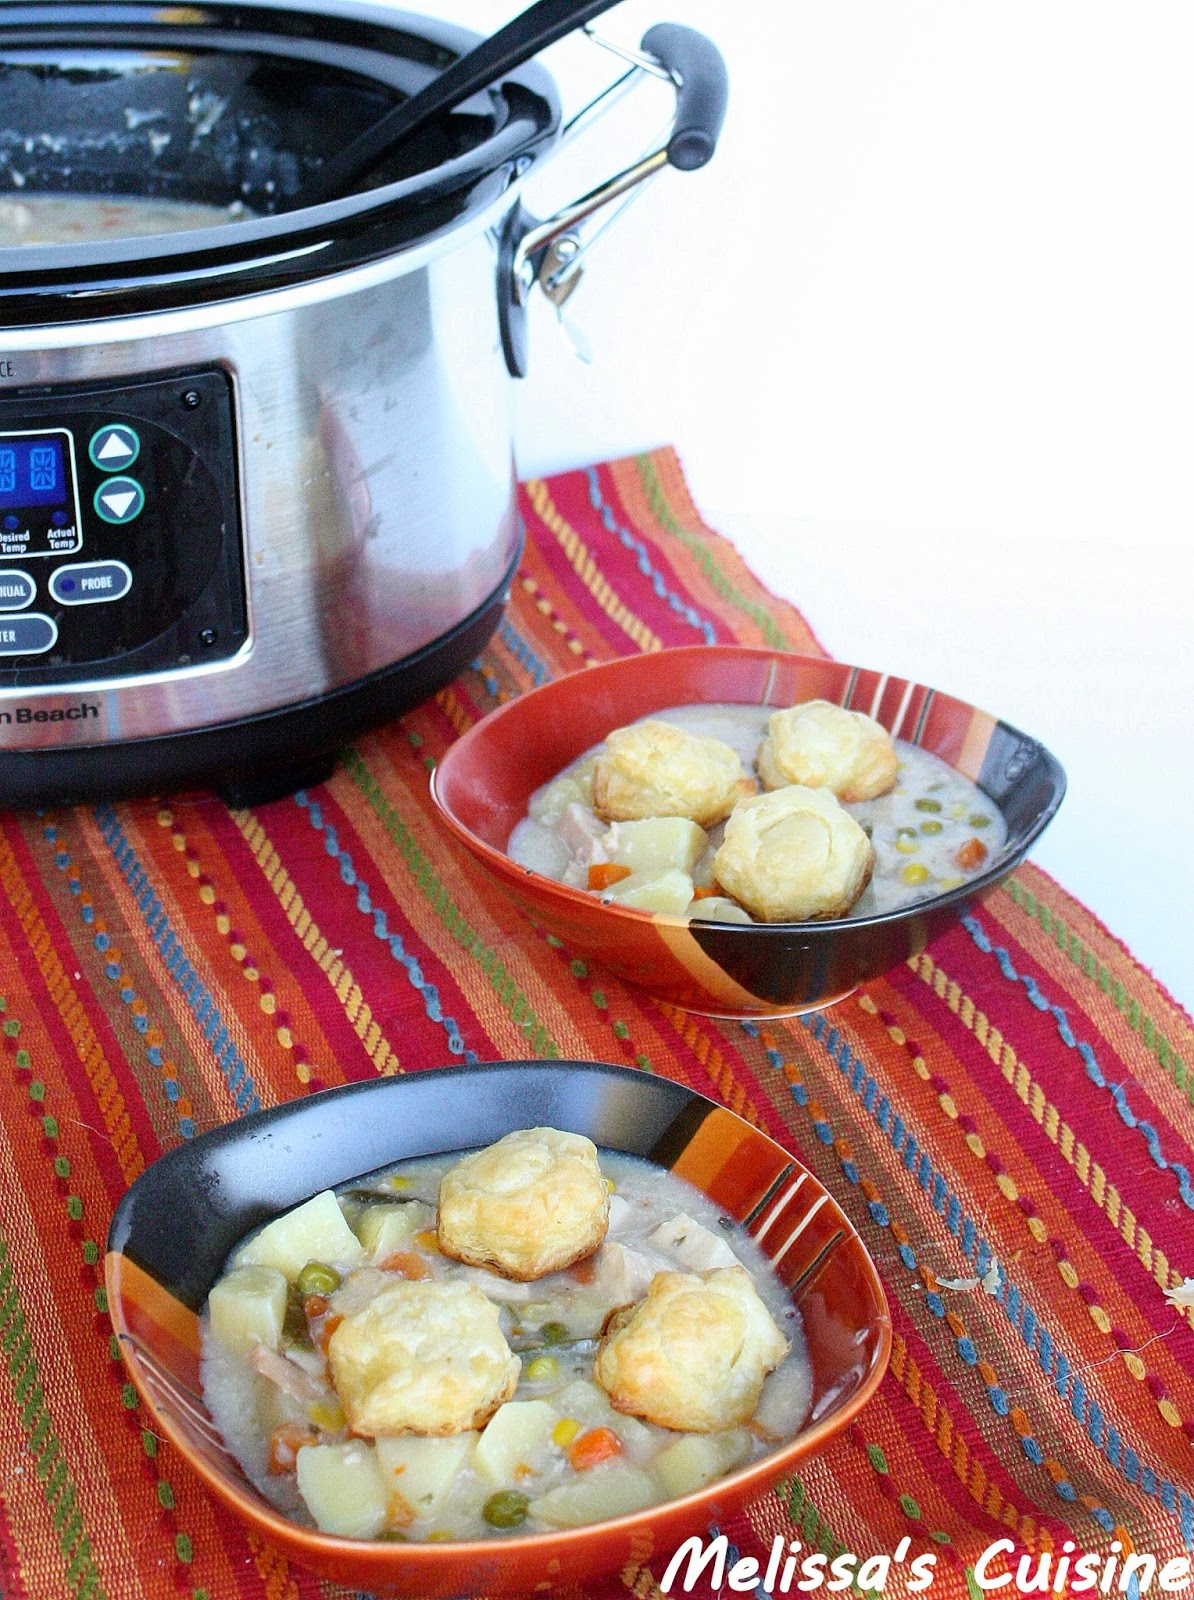 Melissa's Cuisine: Slow Cooker Chicken Pot Pie Soup